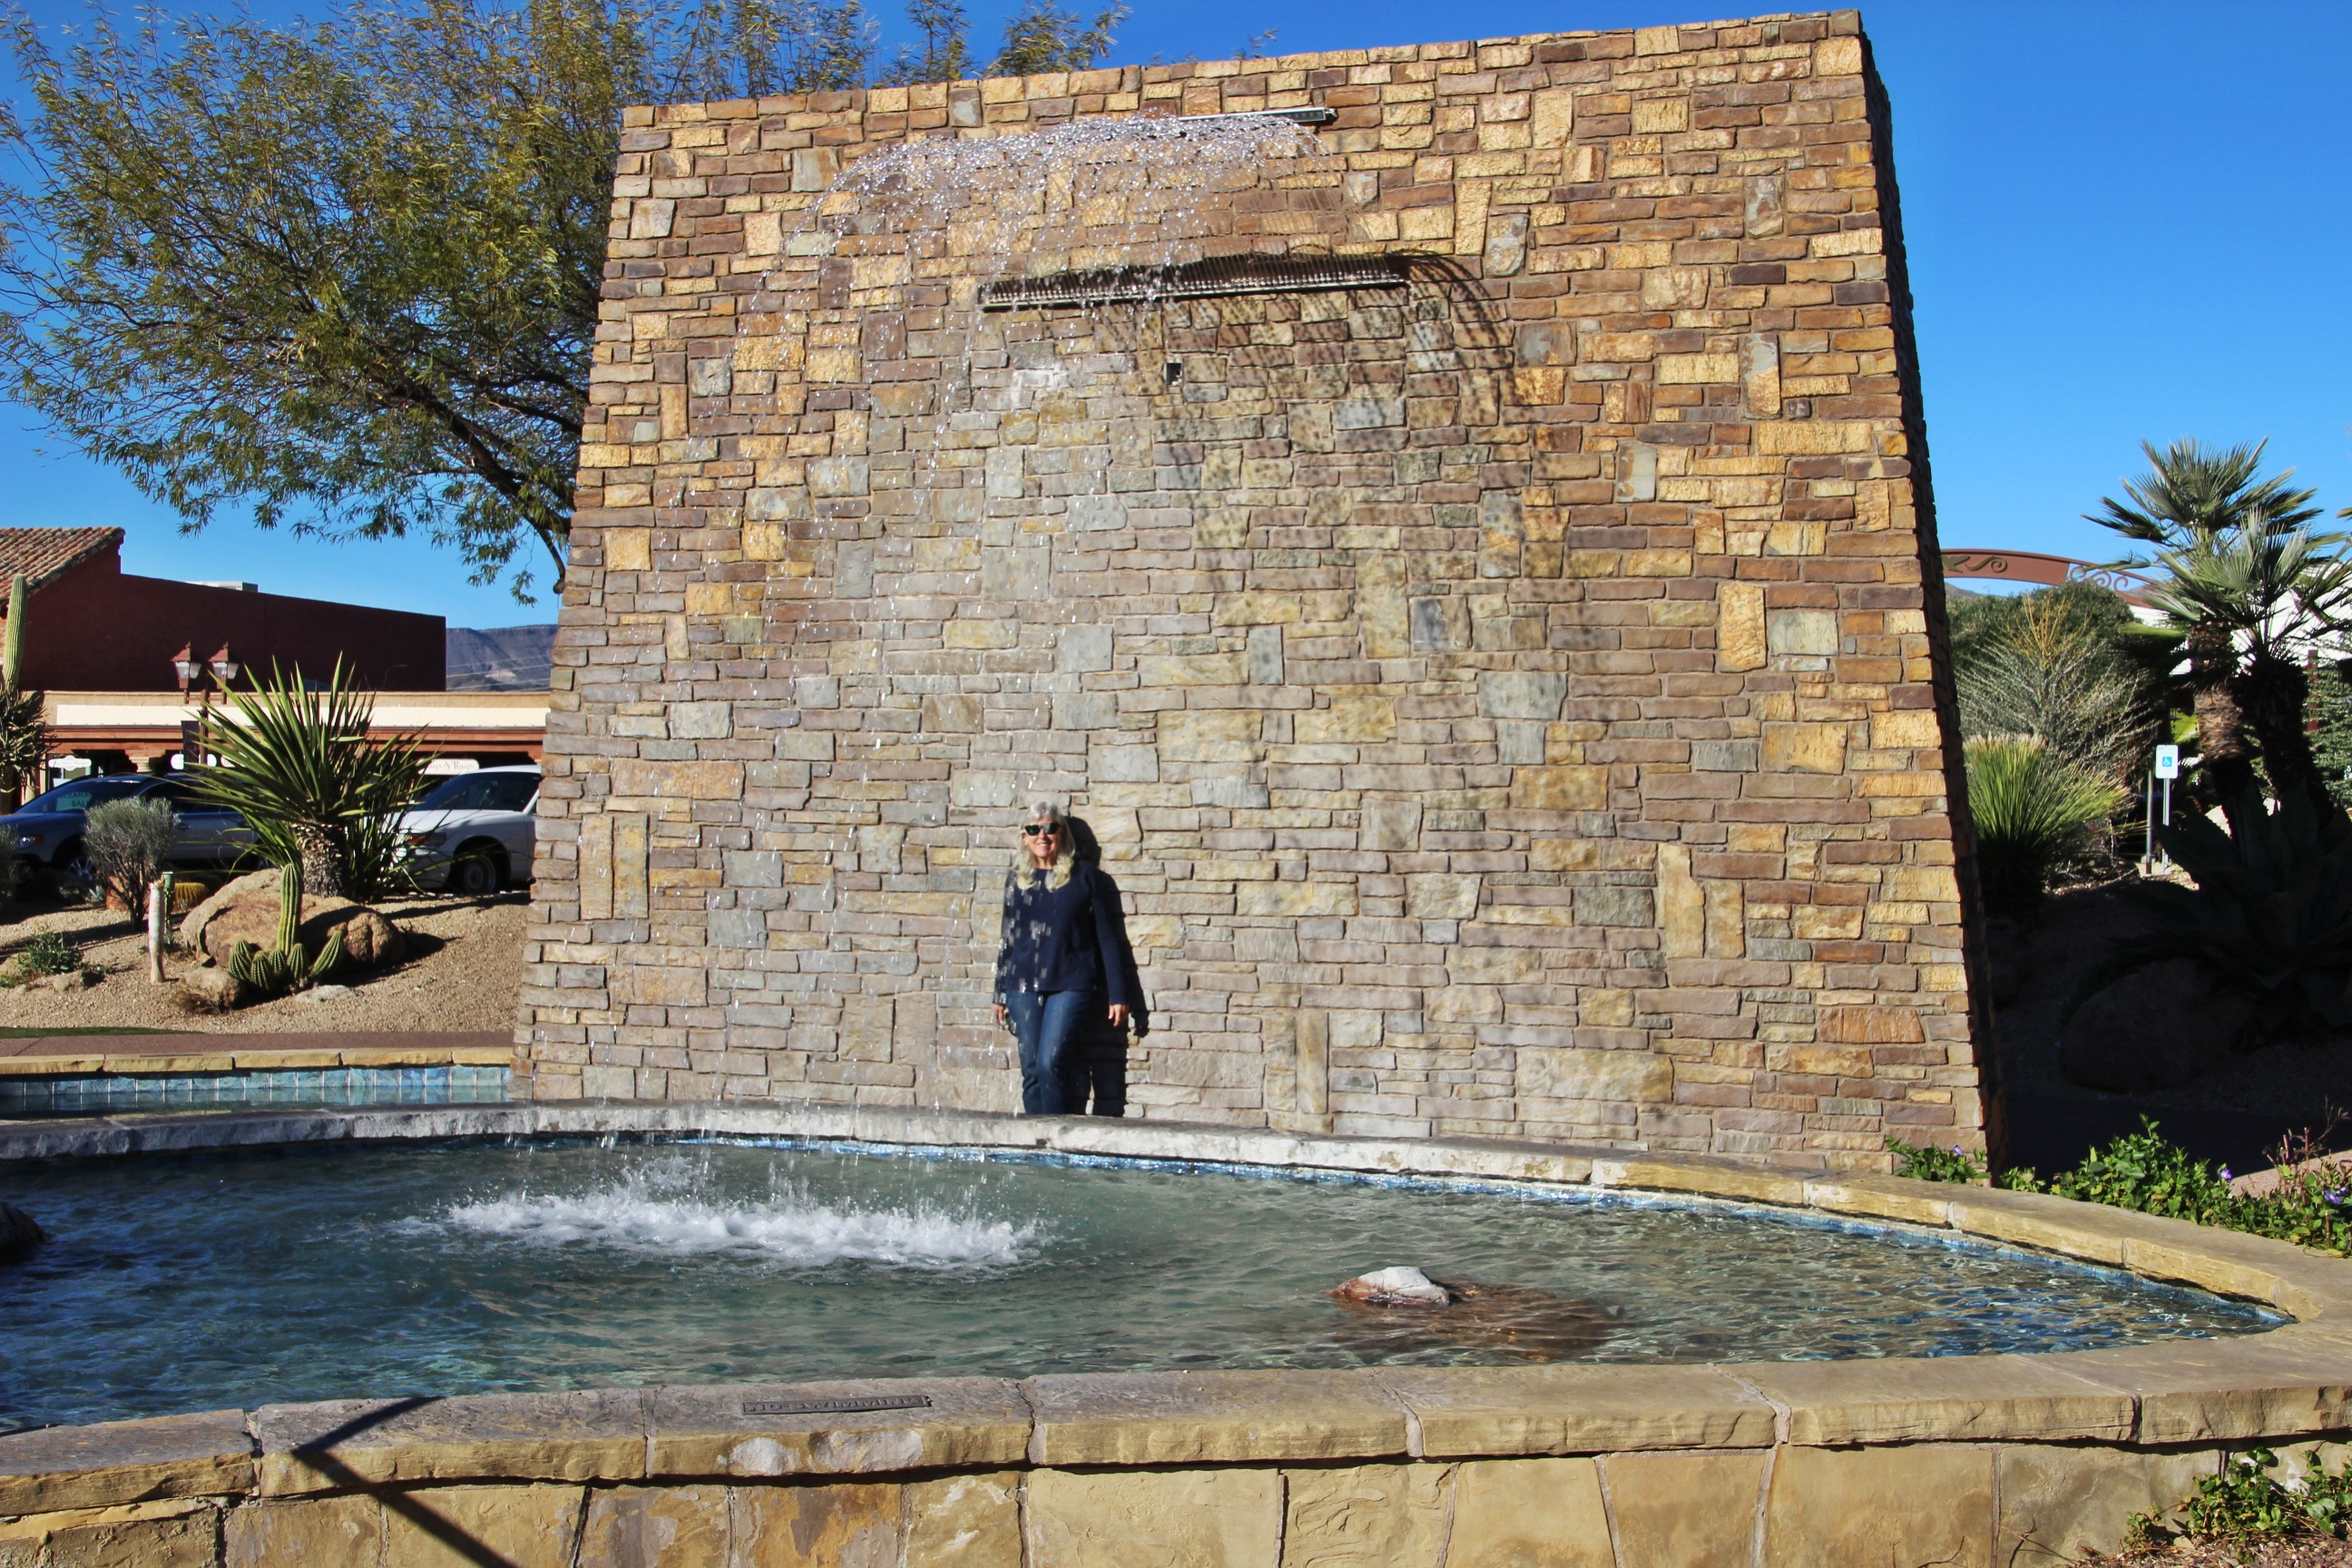 judy orr standing behind the water at the wall fountain